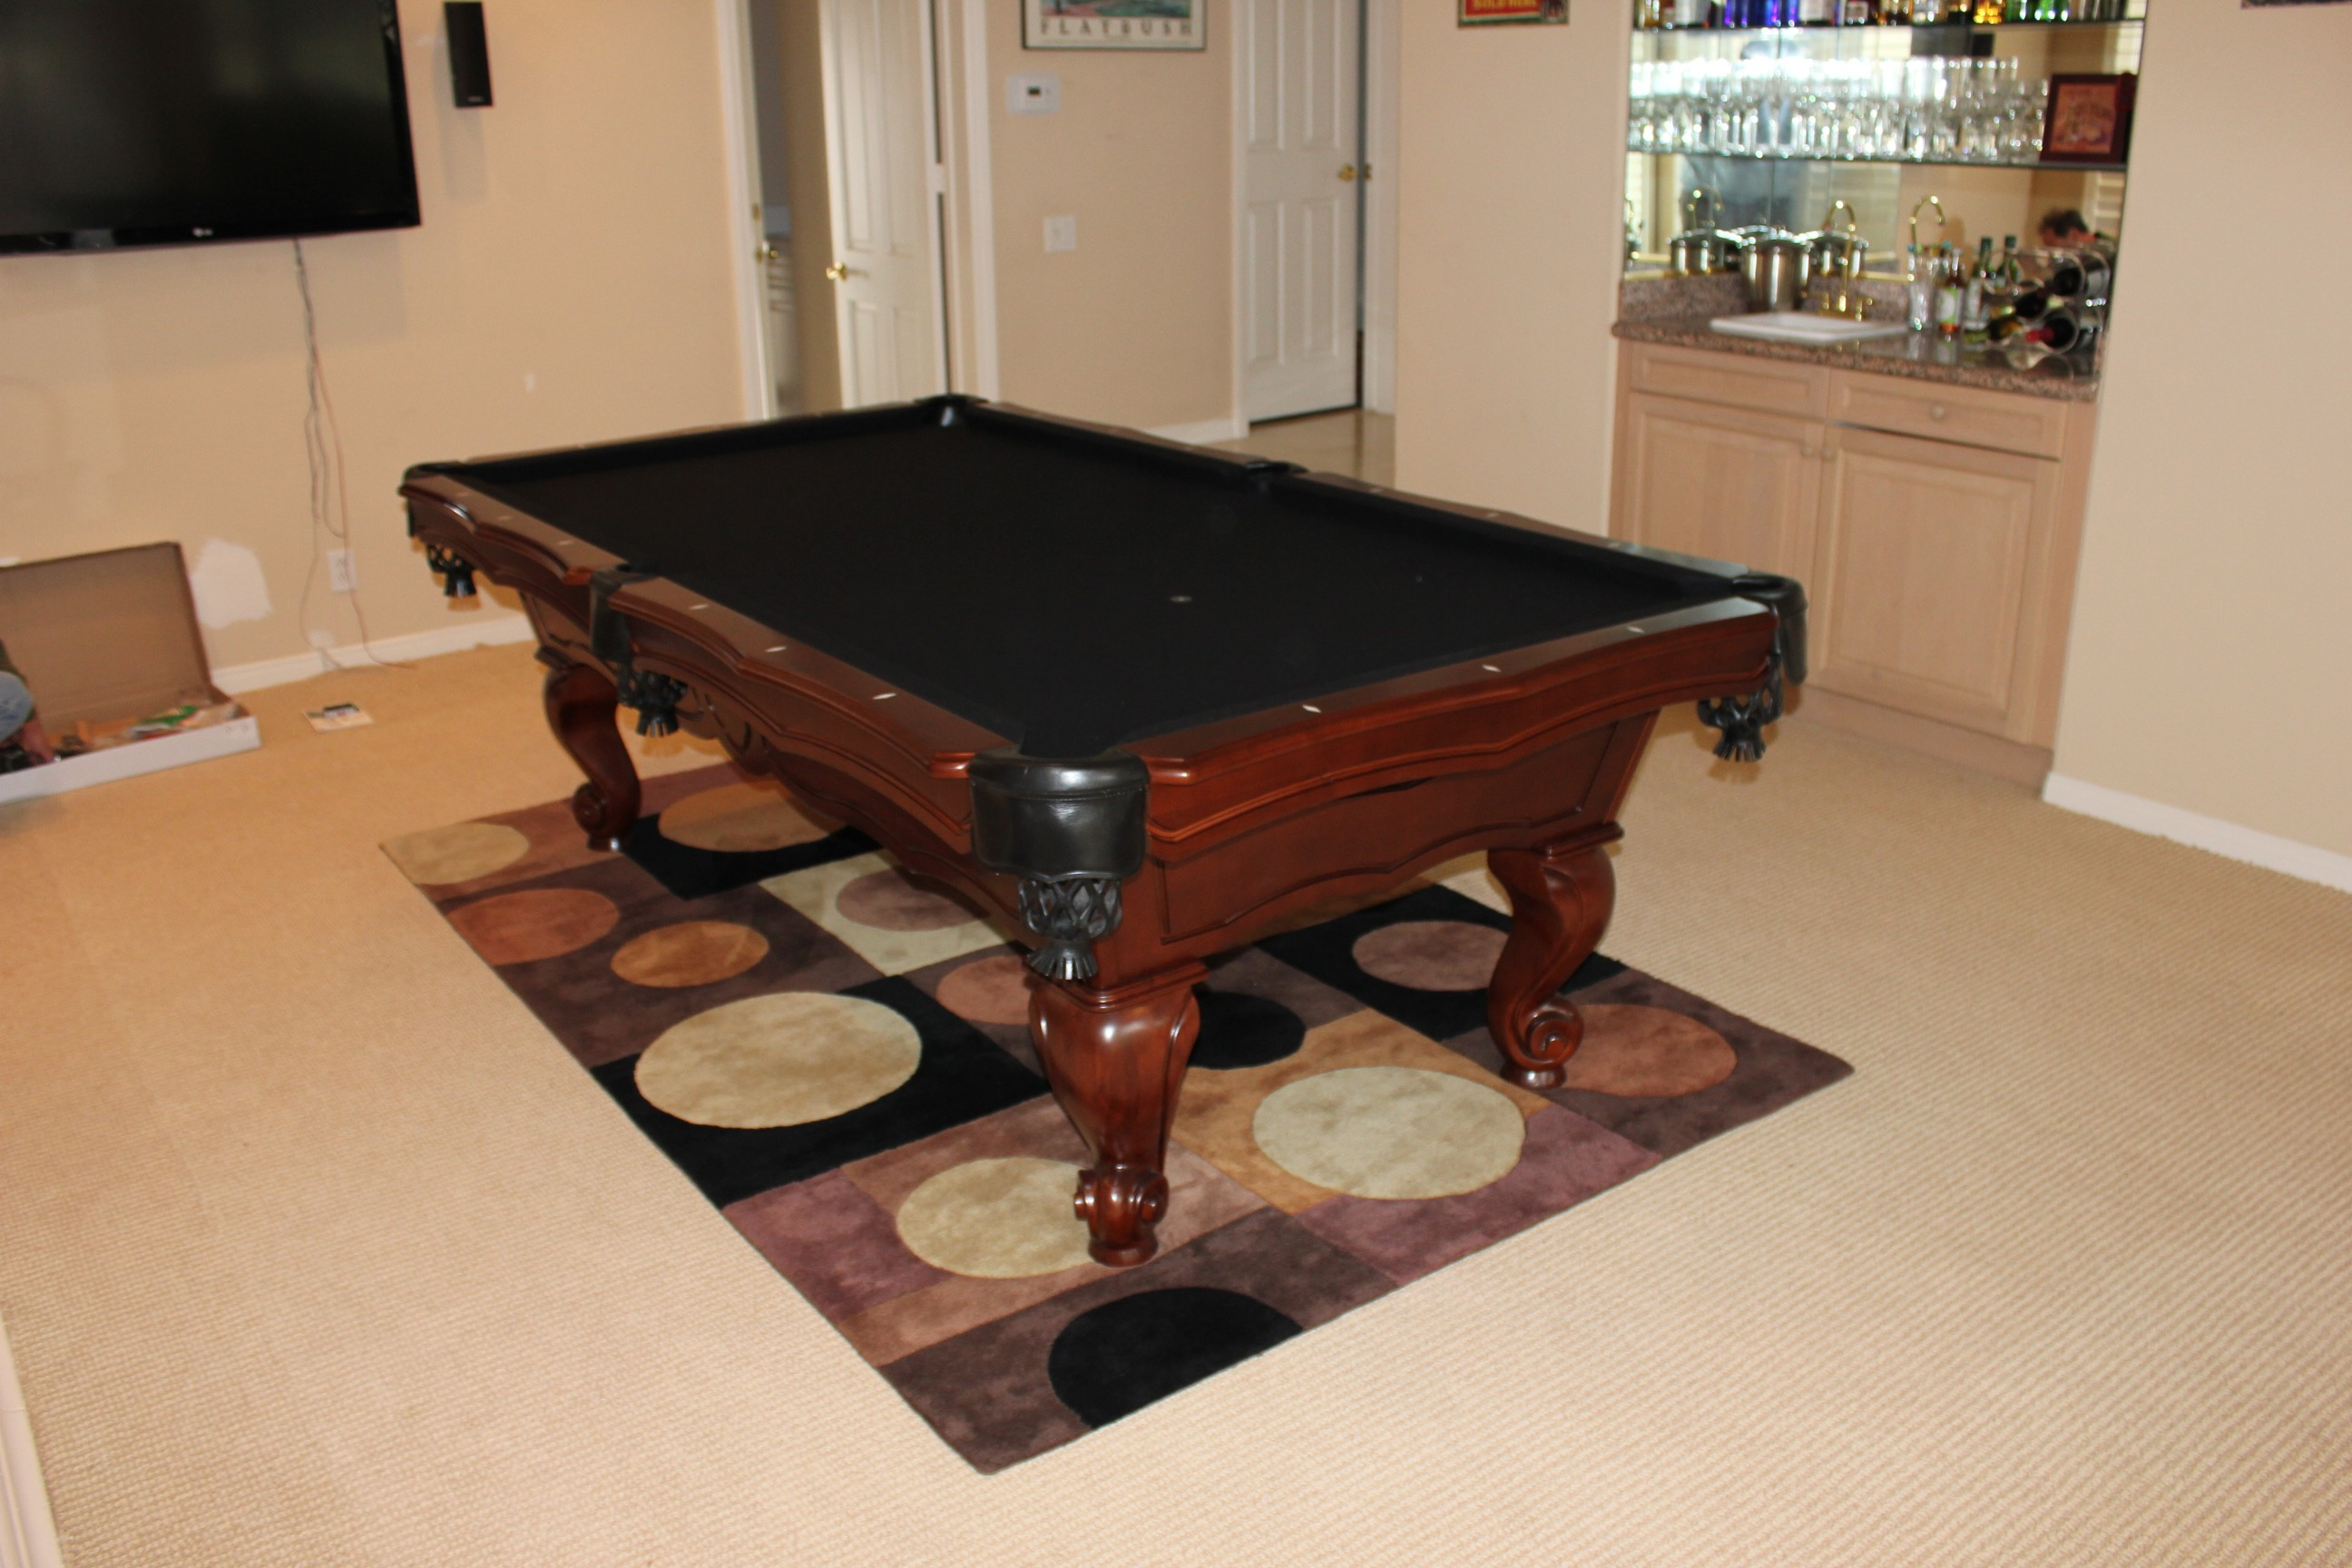 Important Facts About Import Pool Tables